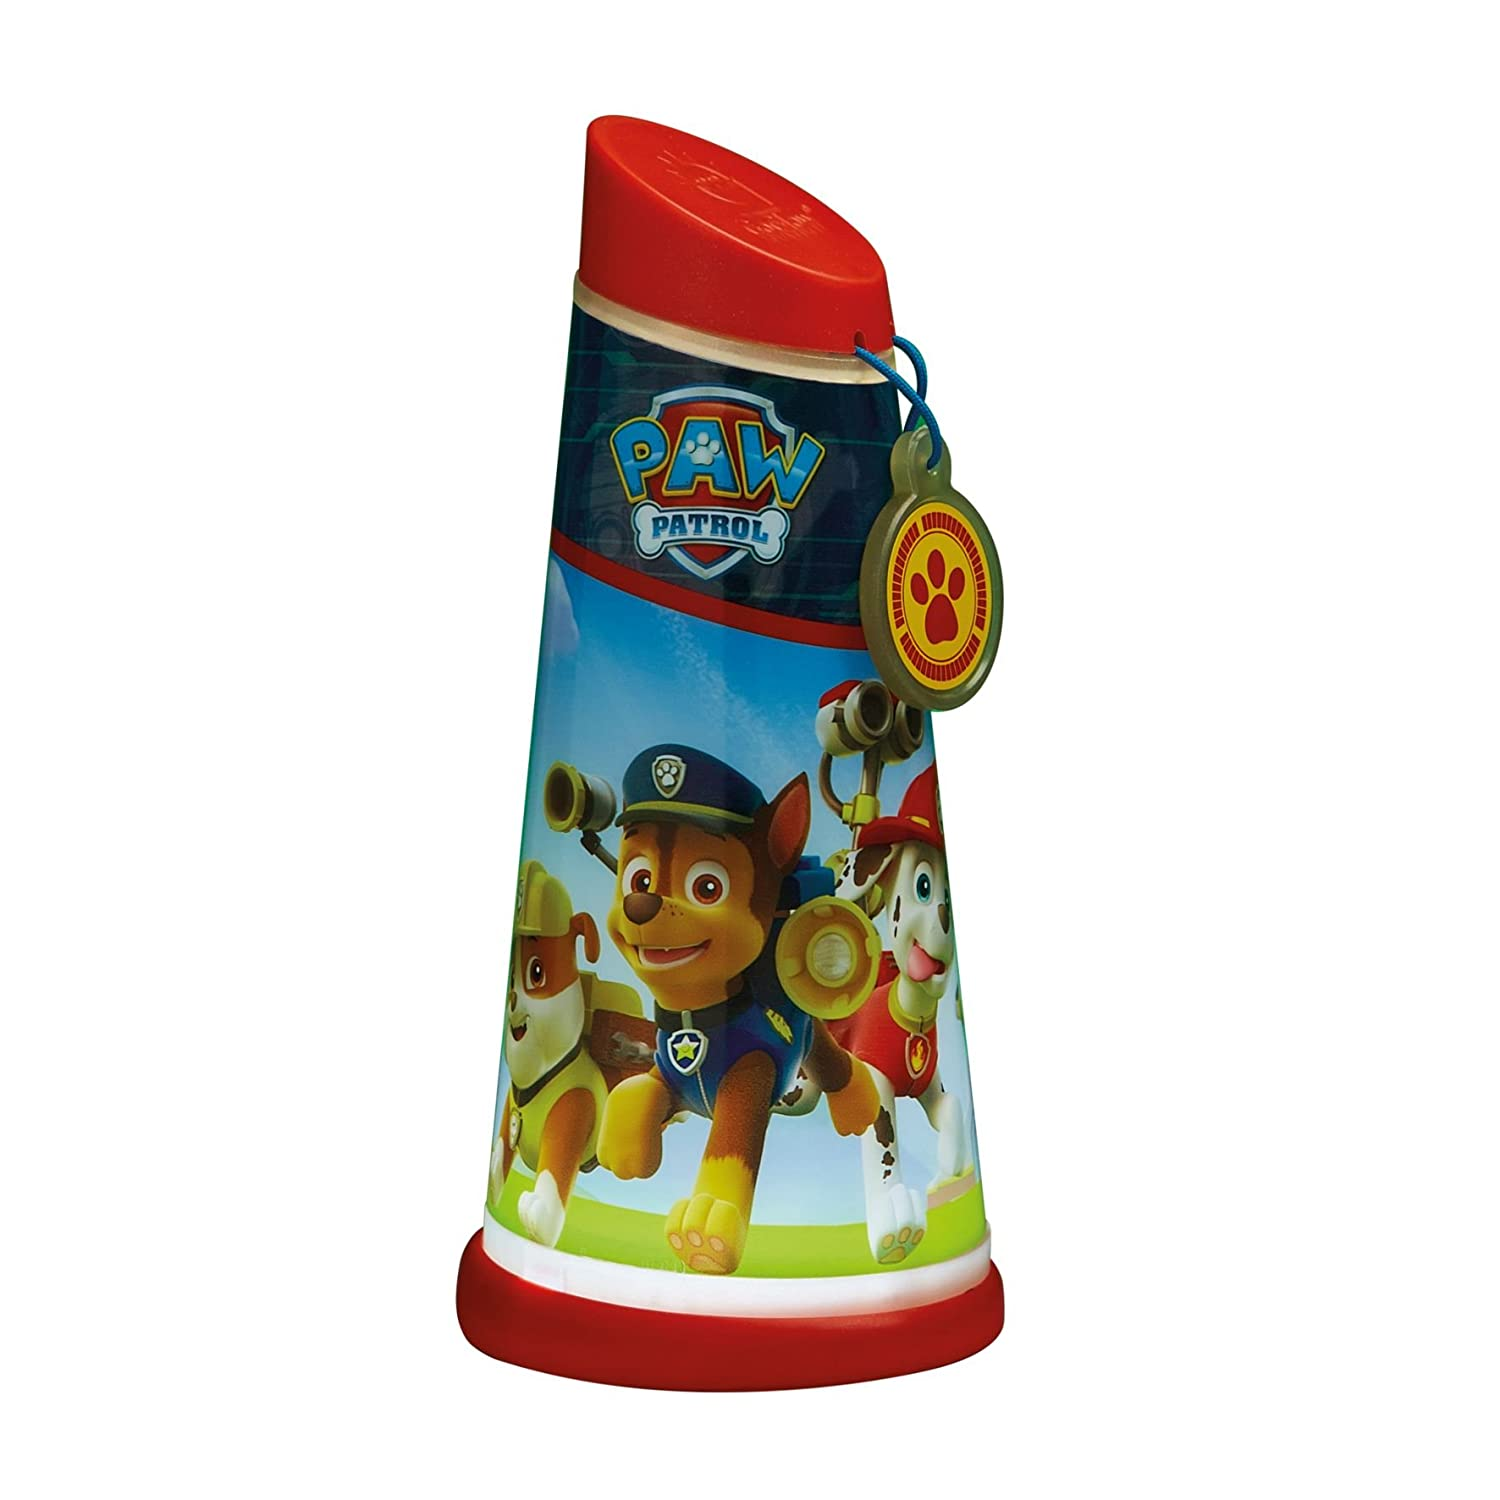 Paw Patrol Tilt Torch and Night Light by GoGlow Worlds Apart 274PAW